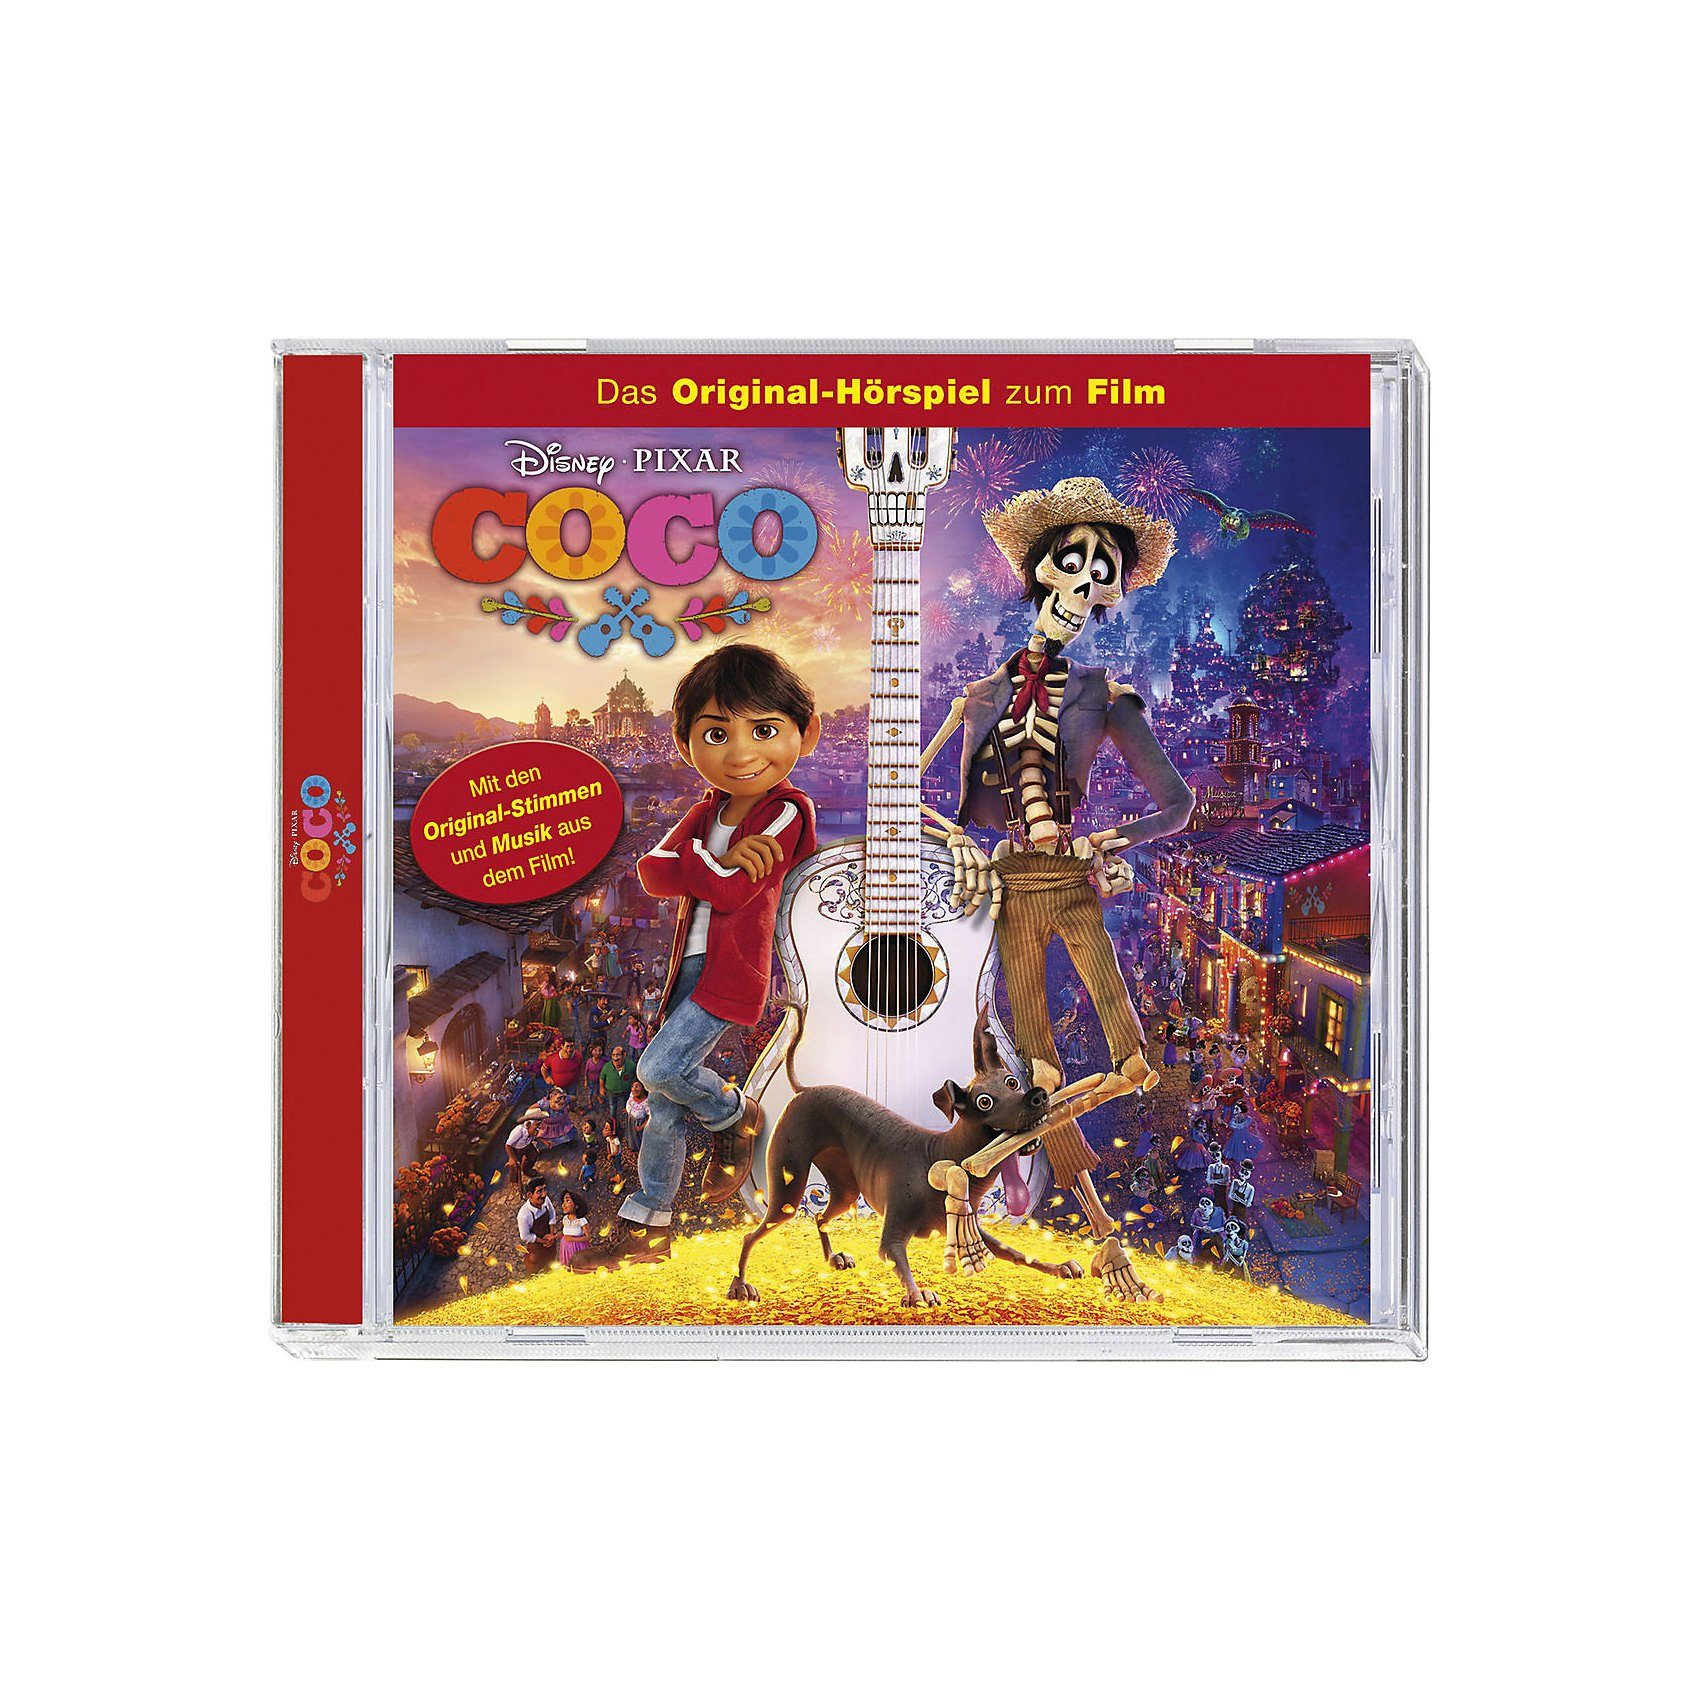 Kiddinx CD Disney - Coco (Original-Hörspiel zum Film)